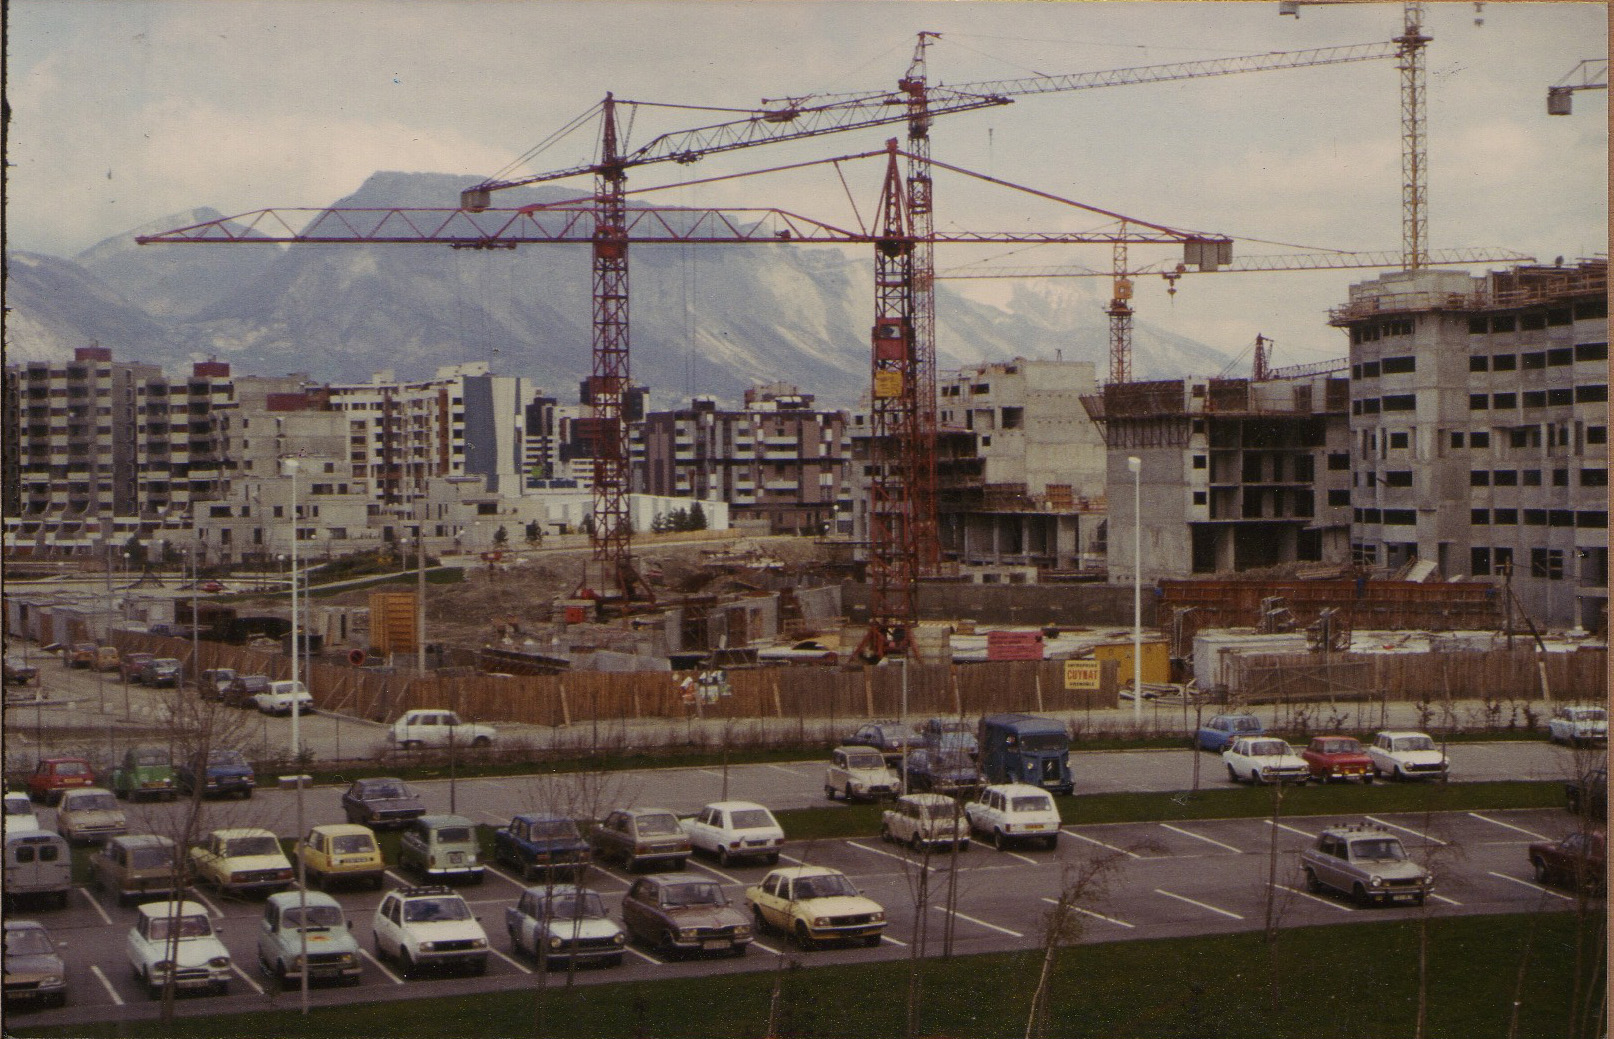 1977 sogreah travaux du quartier granges